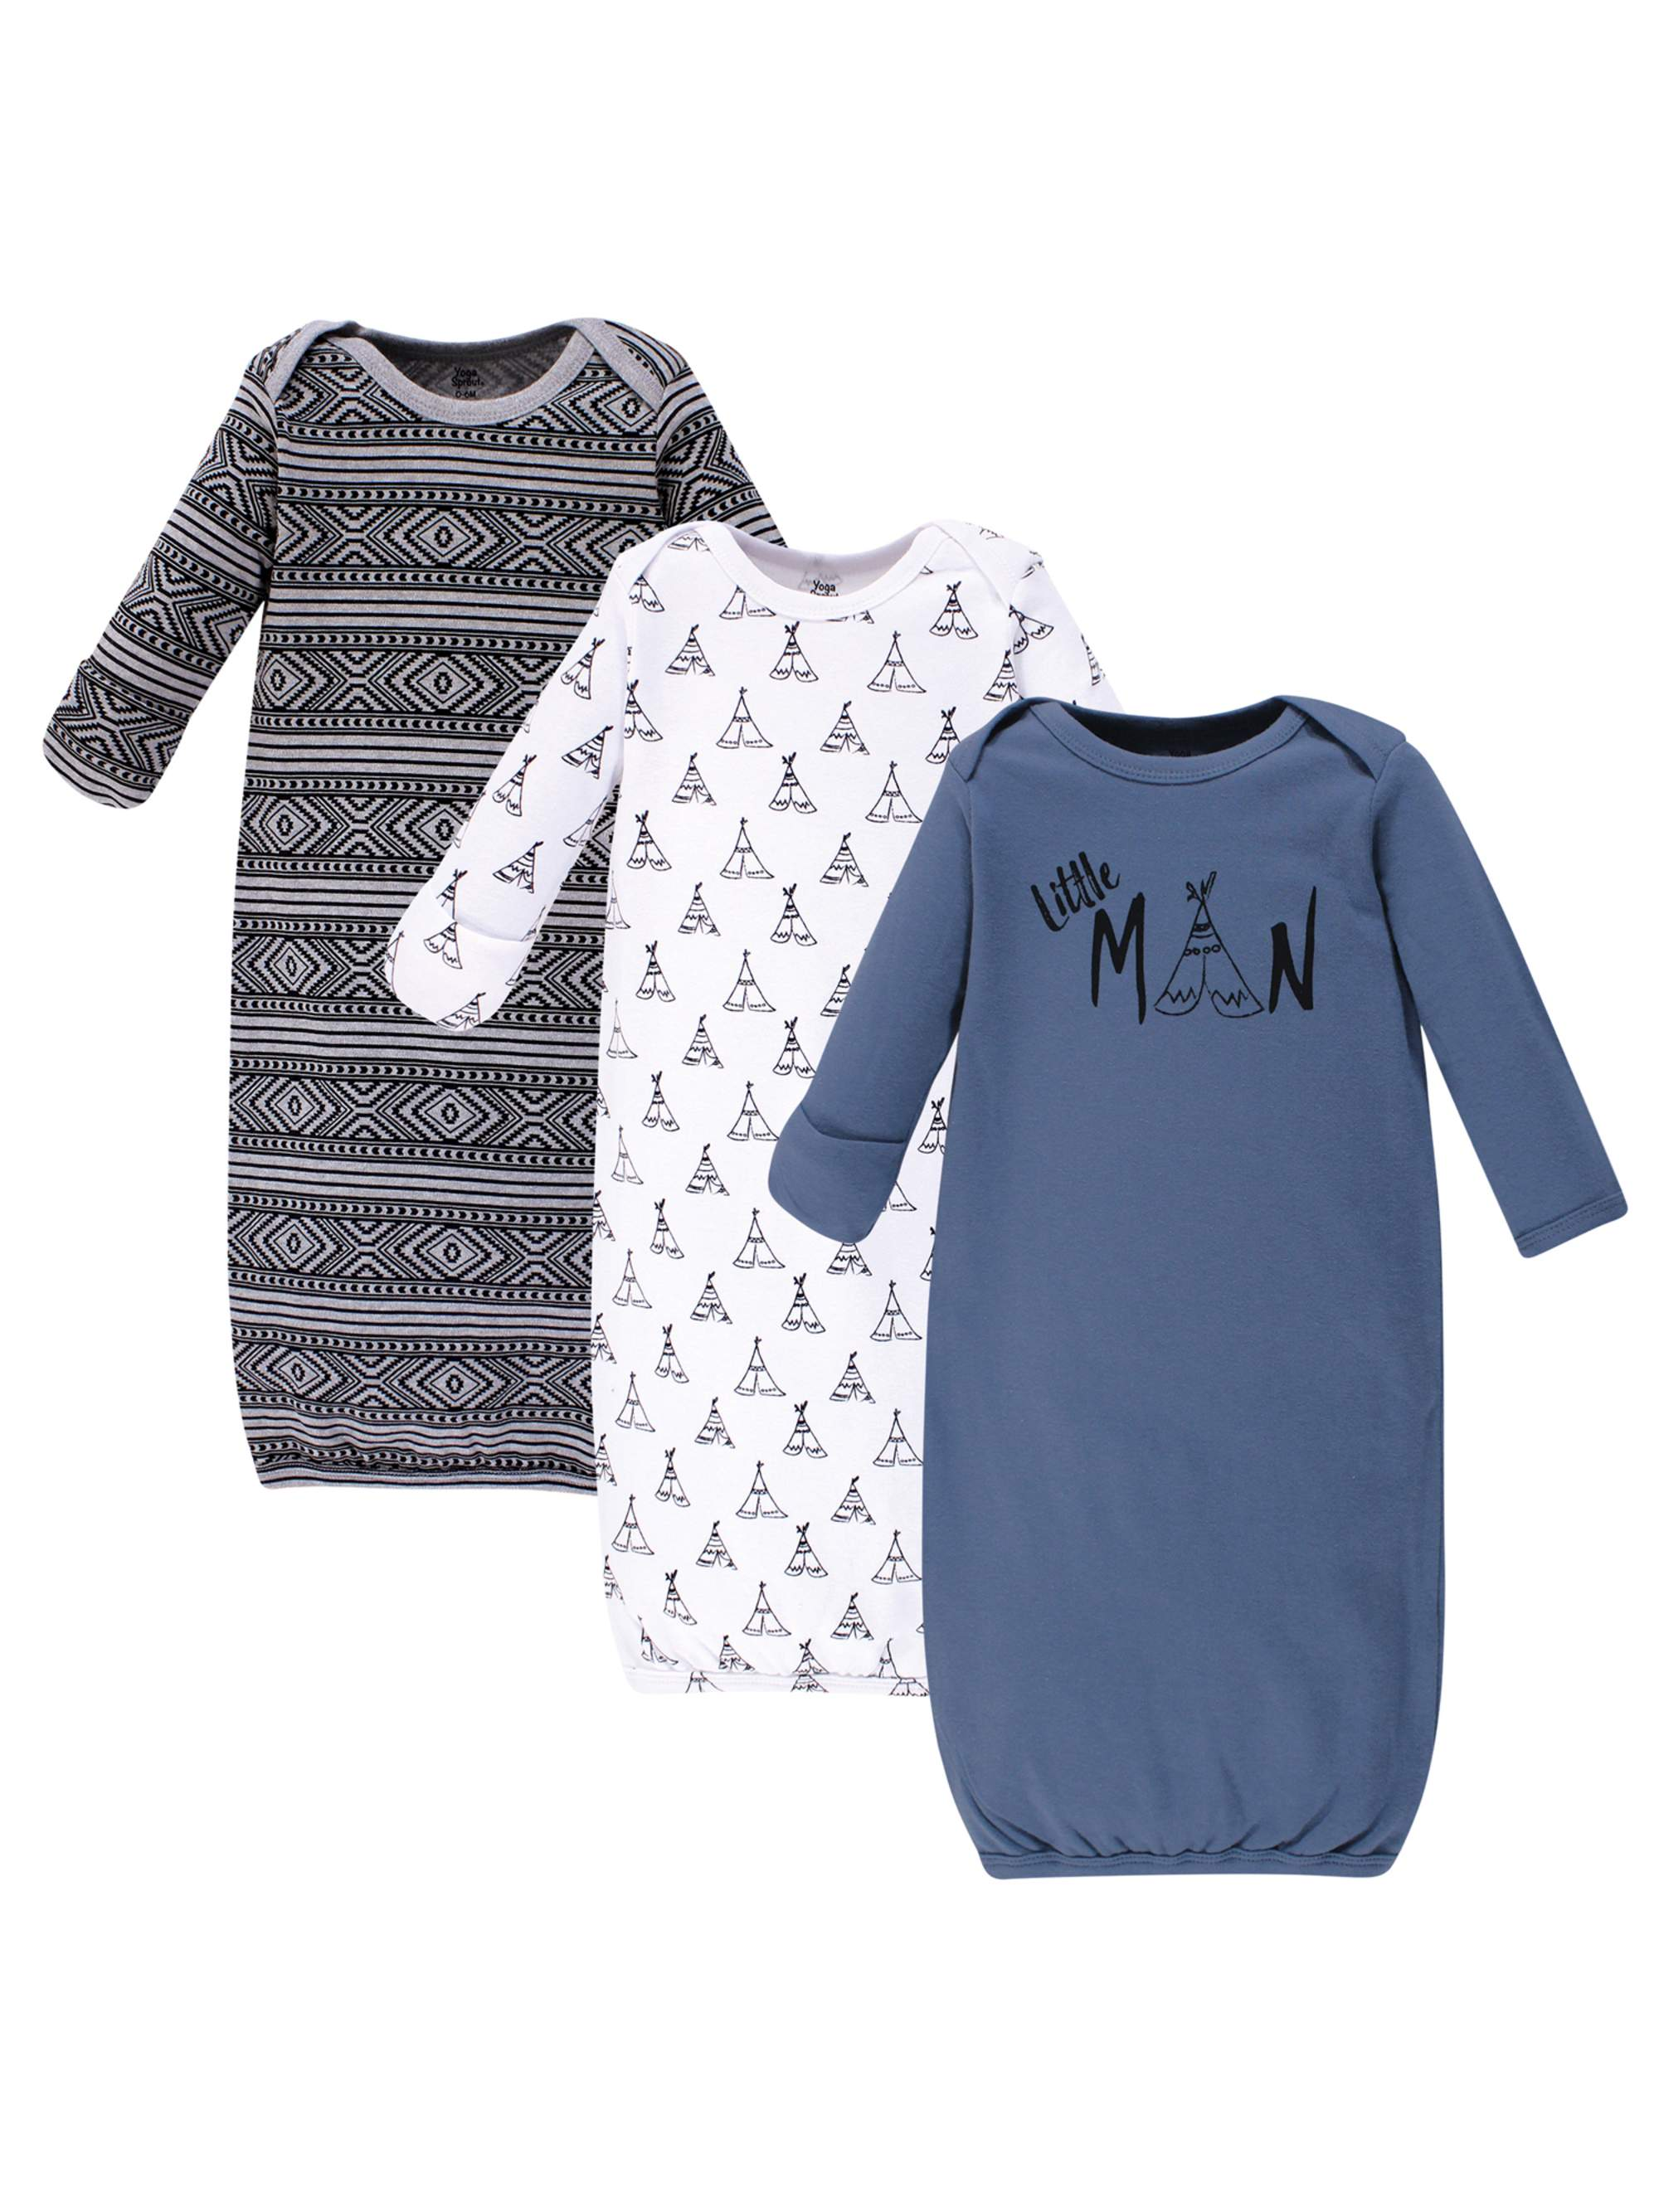 Gowns 3Pk (Baby Boys)